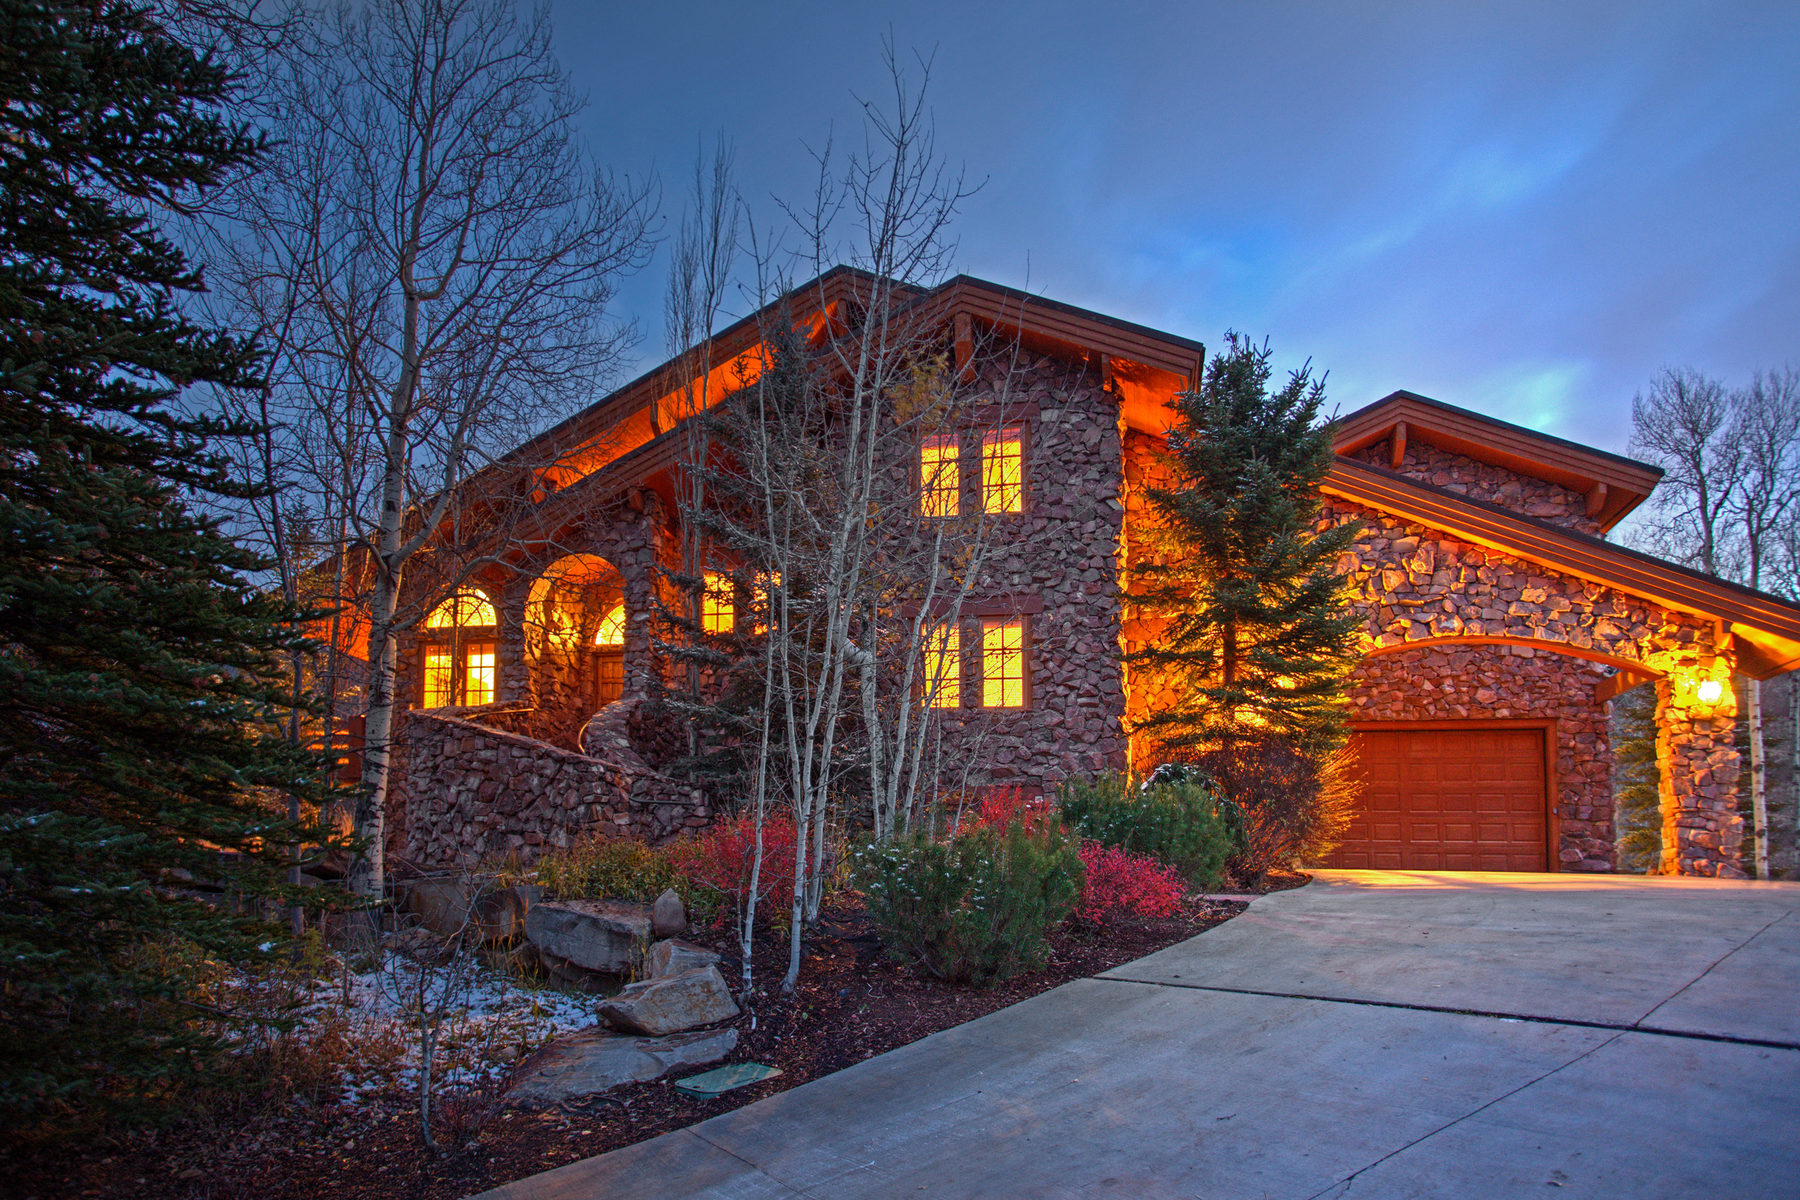 Single Family Home for Sale at Heavily Wooded Mountain Home 8281 Trails Dr Park City, Utah, 84098 United States